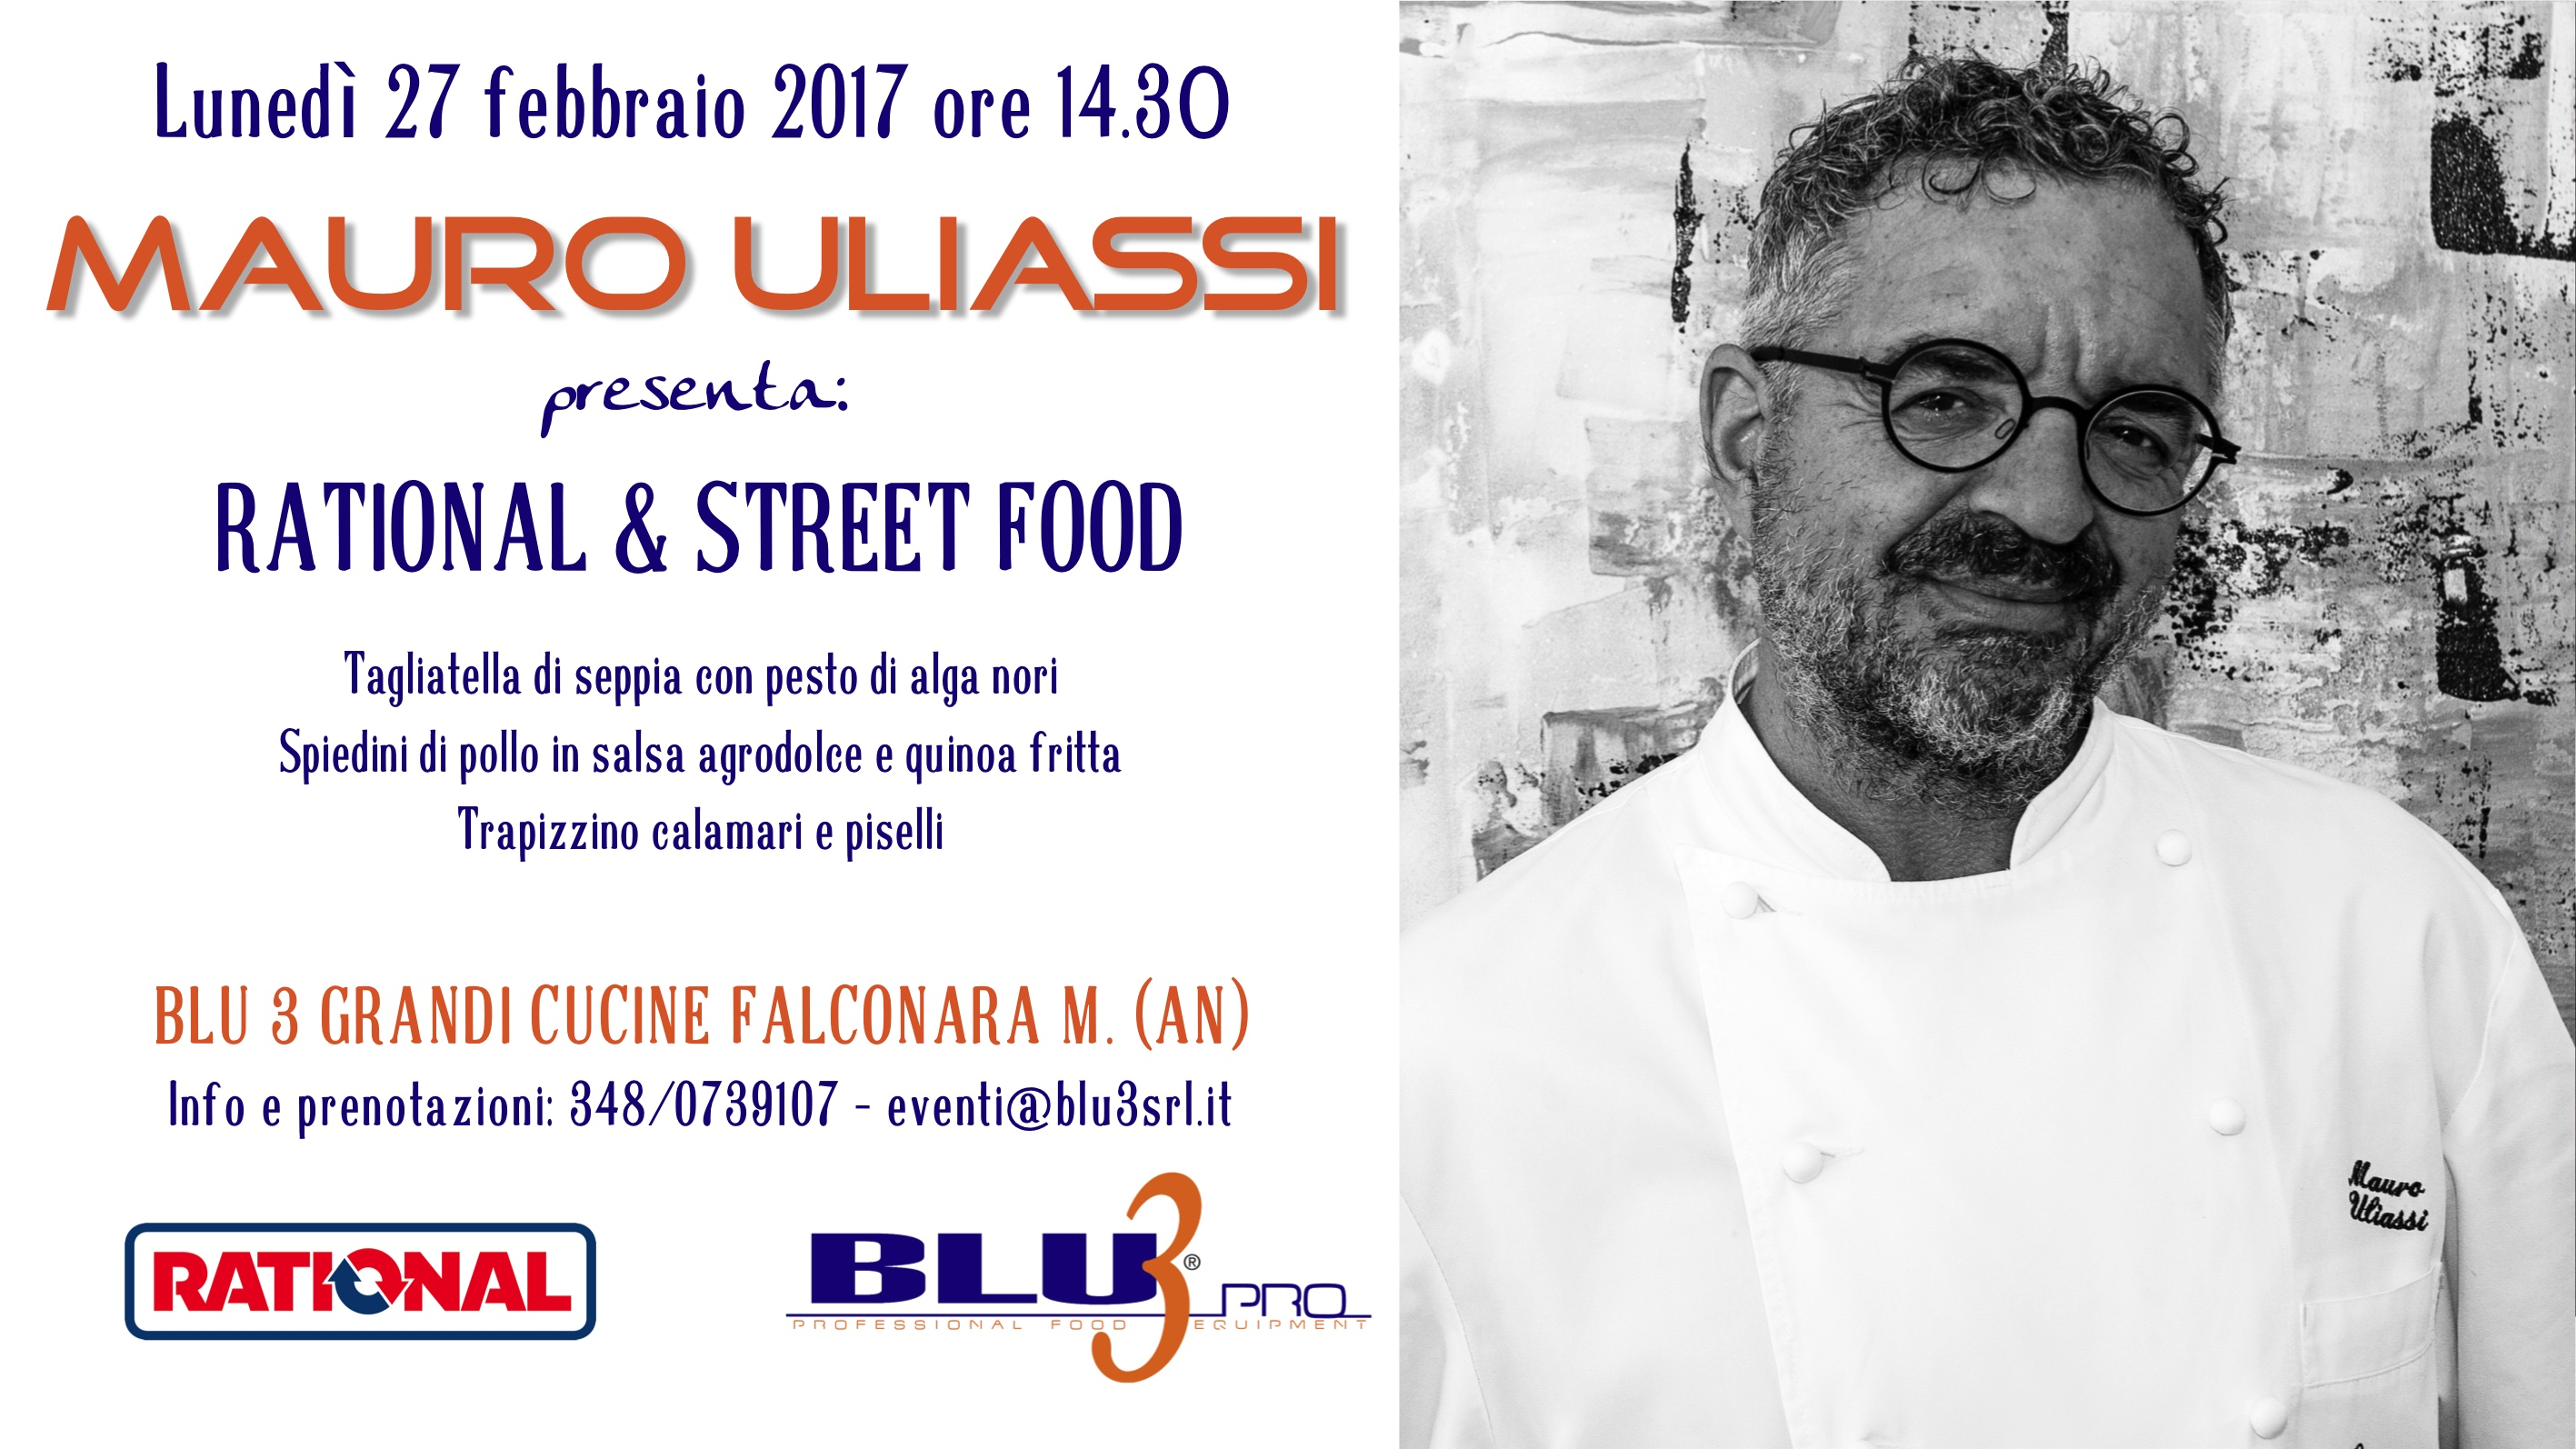 ULIASSI RATIONAL STREET FOOD rev. 01